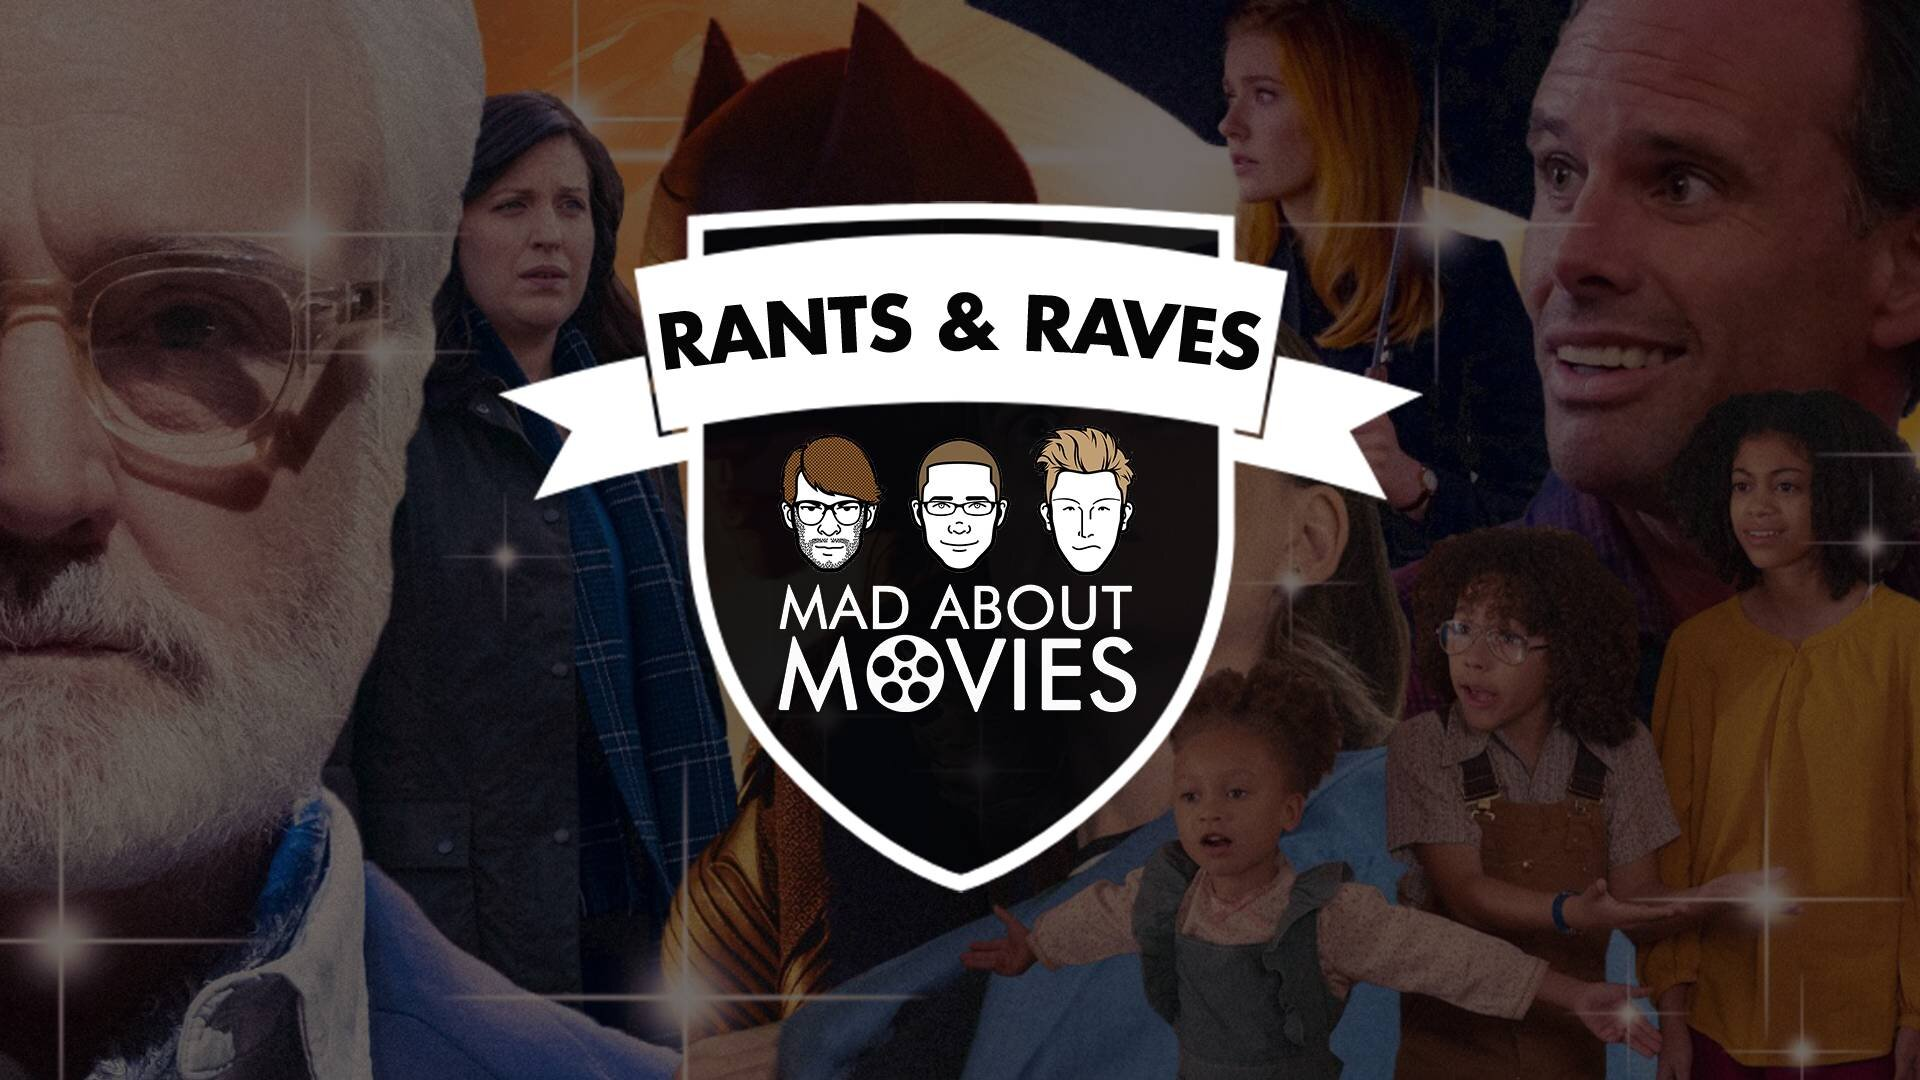 Mad_About_Movies_Rants_template (1).jpg